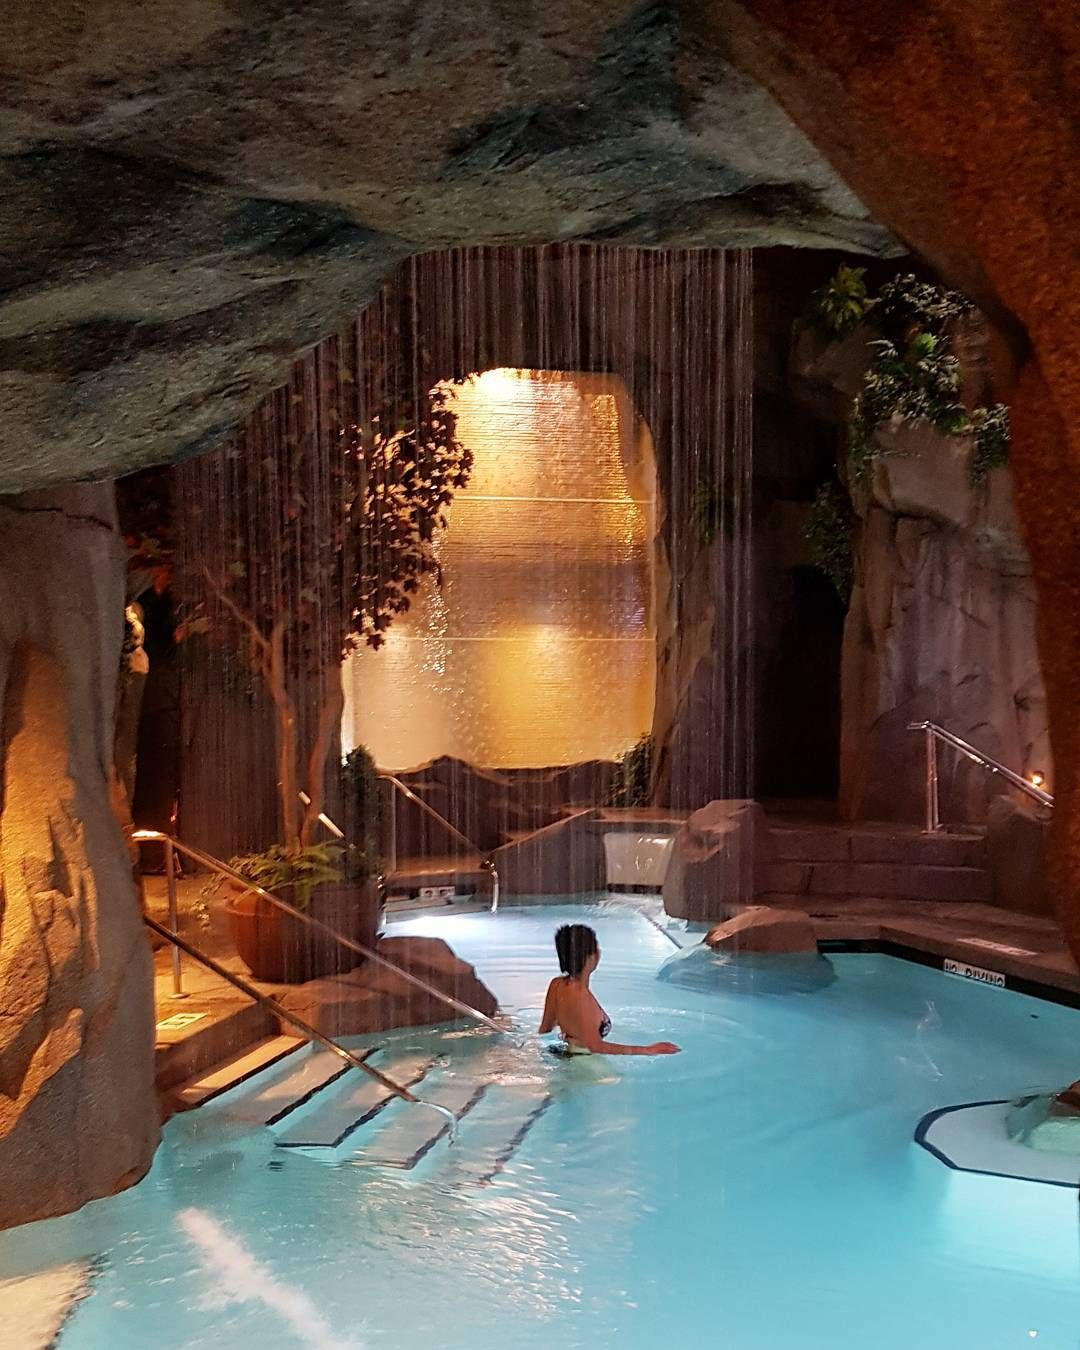 Vancouver Island's Grotto Spa Is Officially The Number One Spa In Canada